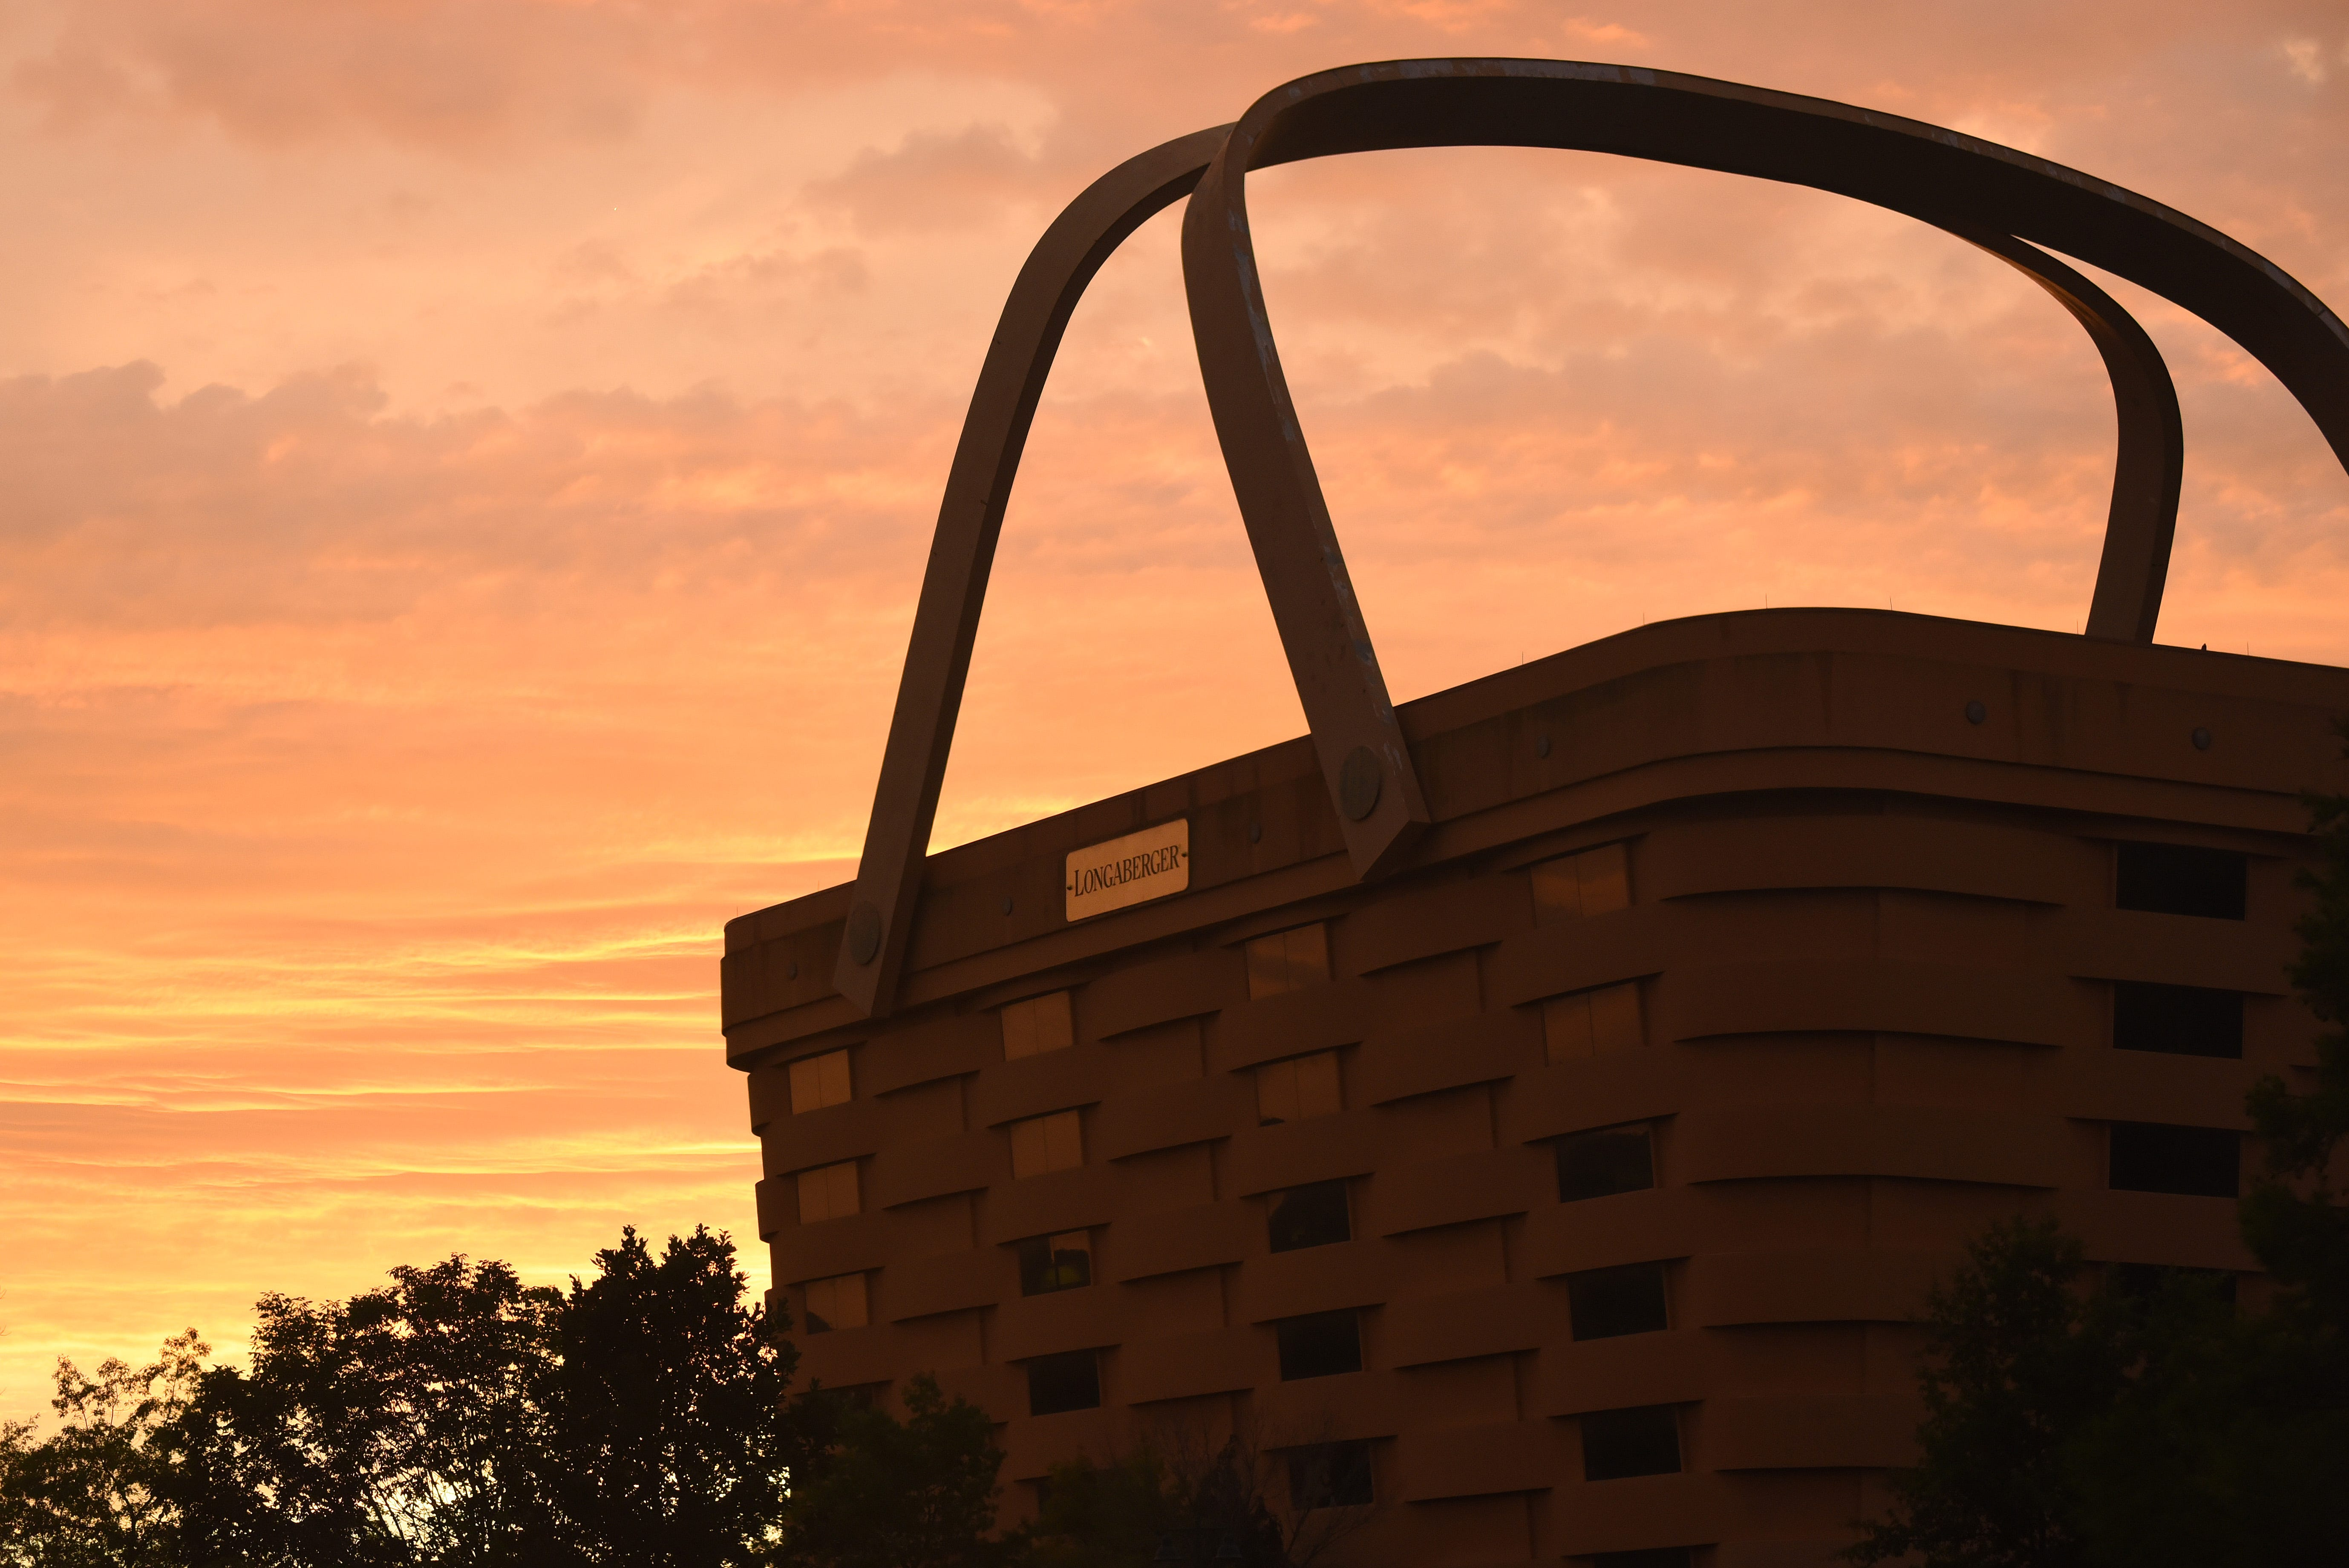 9 Story Of 2017: Longaberger Basket Building Woes